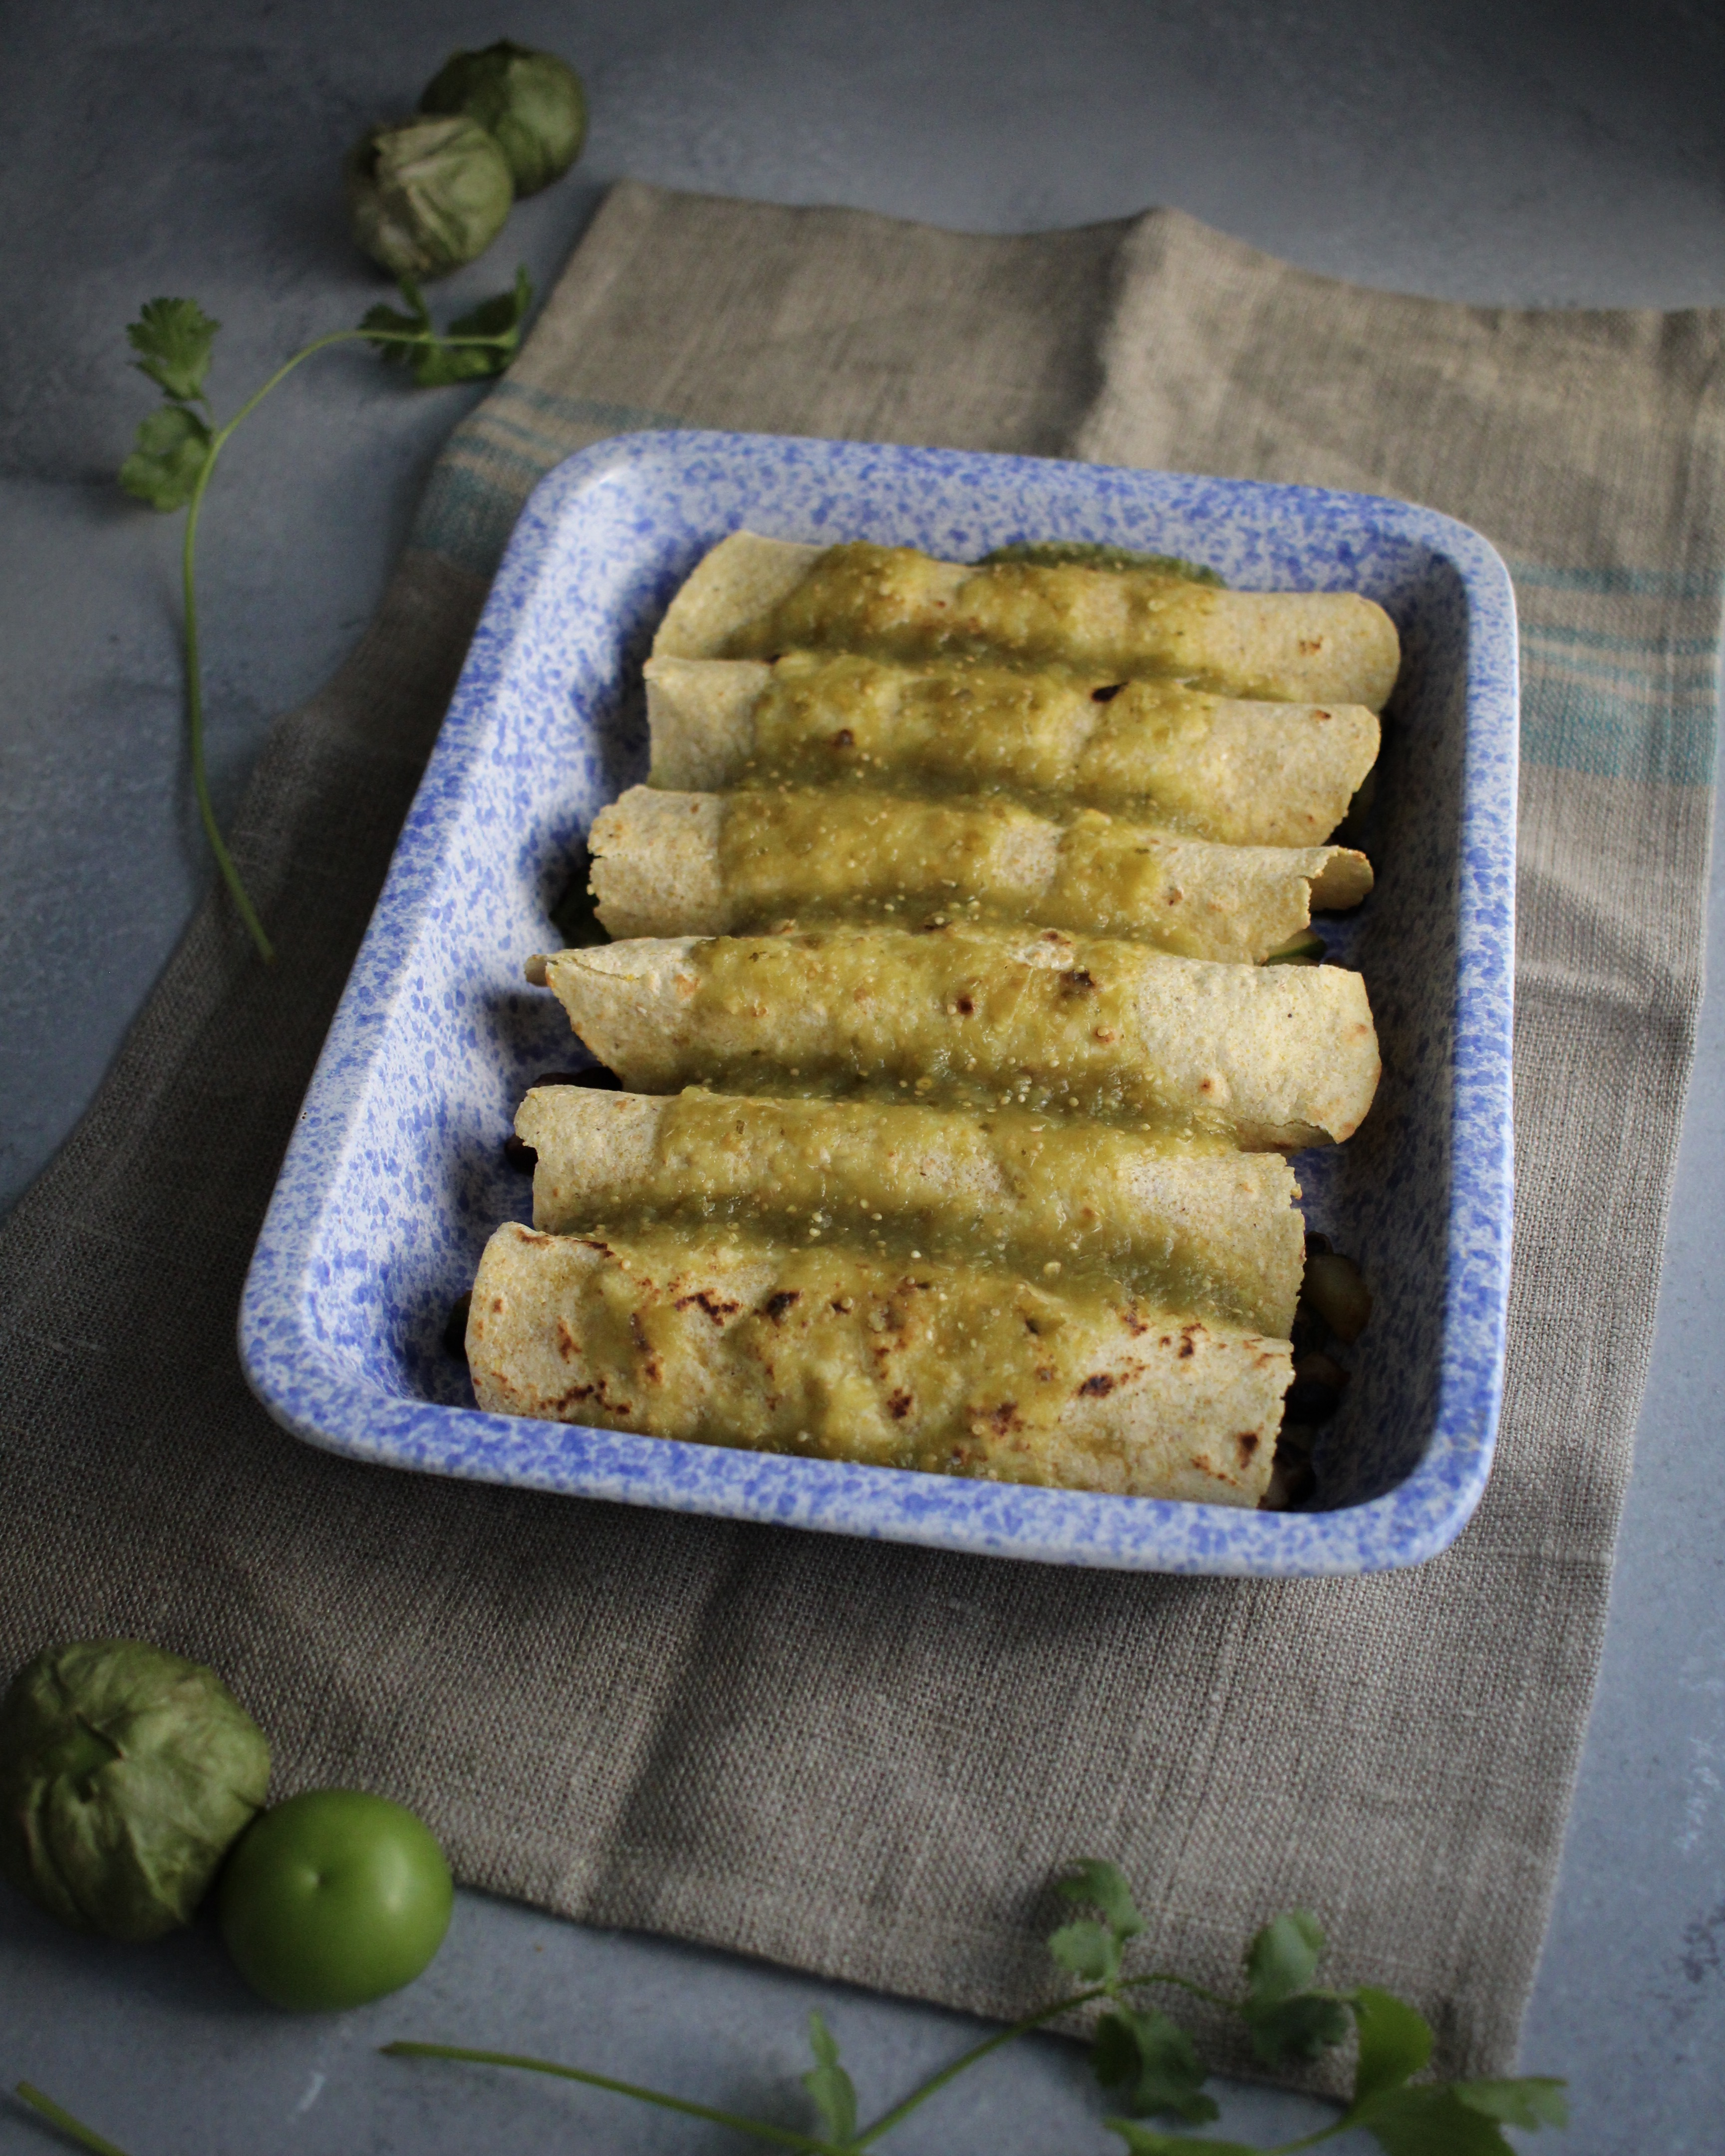 Vegan Enchiladas Verdes with Potato and Black Bean Filling before going into the oven